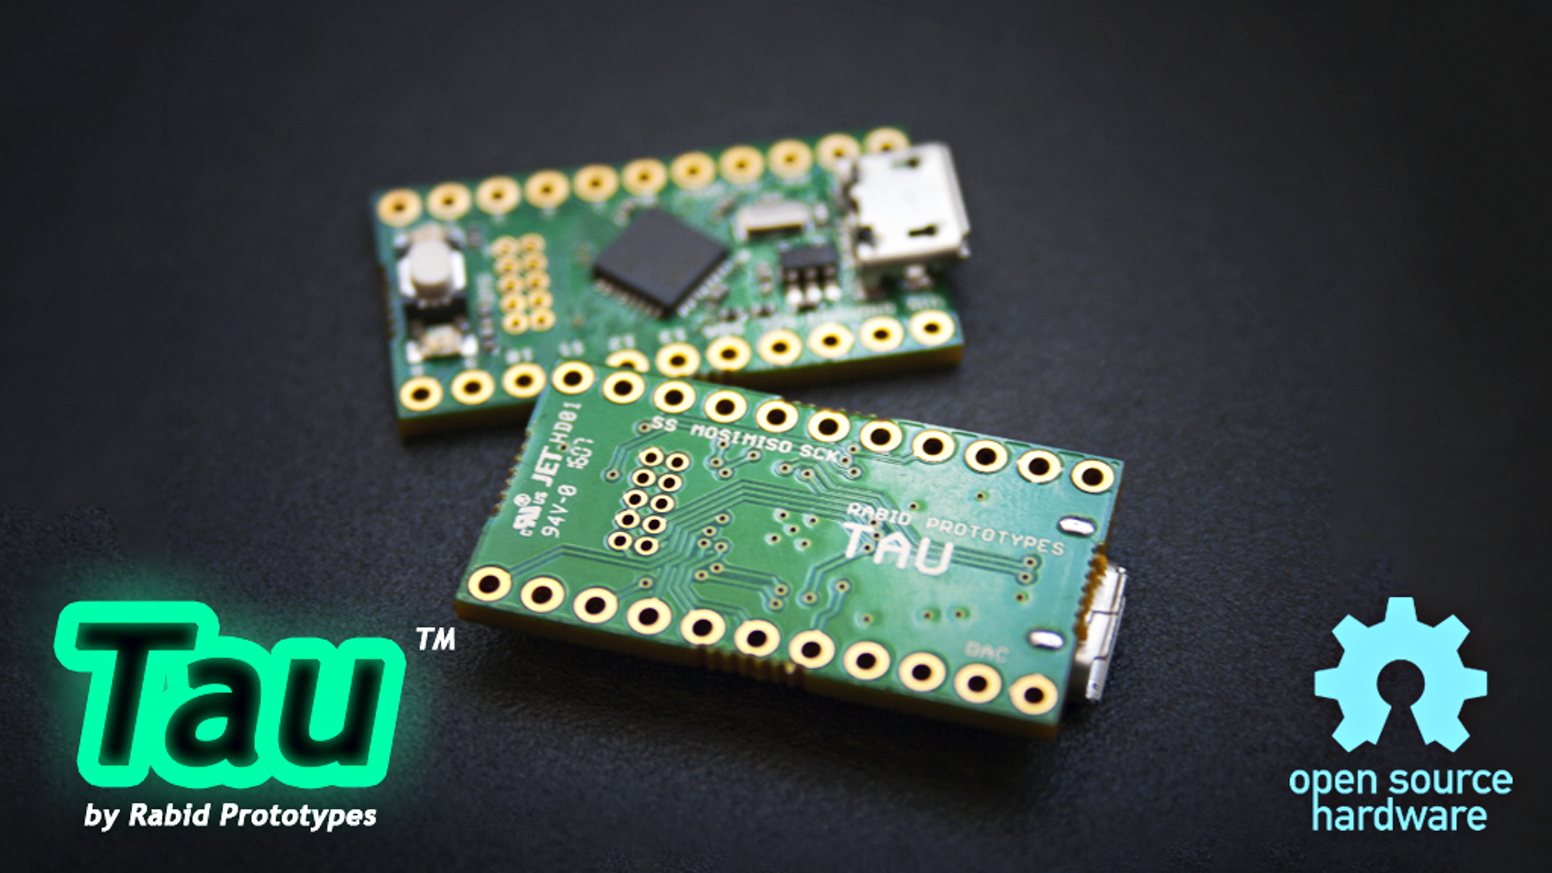 Featuring a 32-bit 48MHz ARM Cortex M0+ w/ 16K of ram the Tau packs a ton of power in a tiny package!